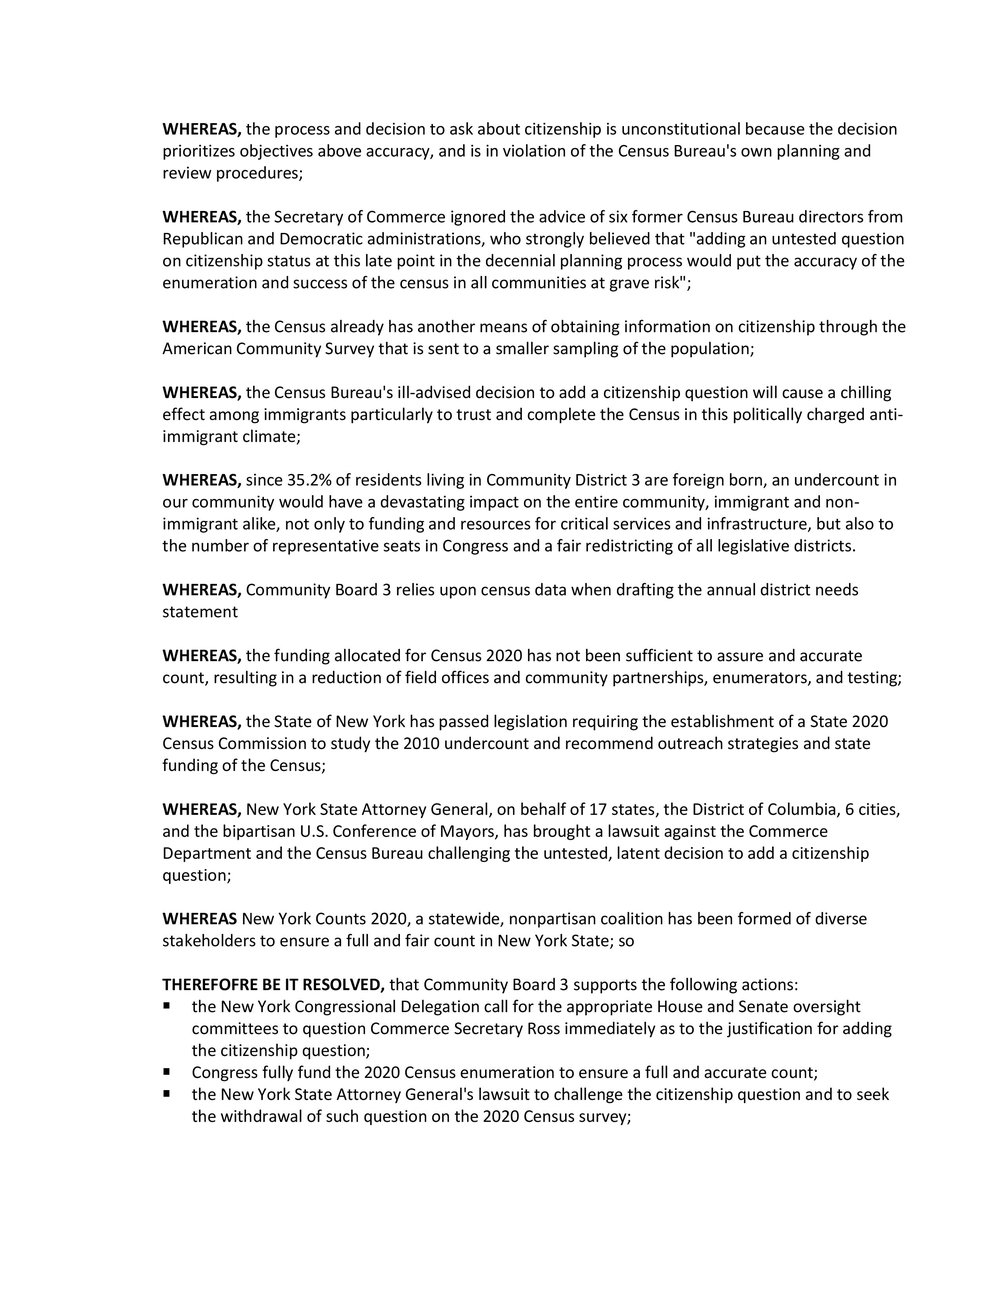 CB 3 Resolution_2020census (1)-page-002.jpg